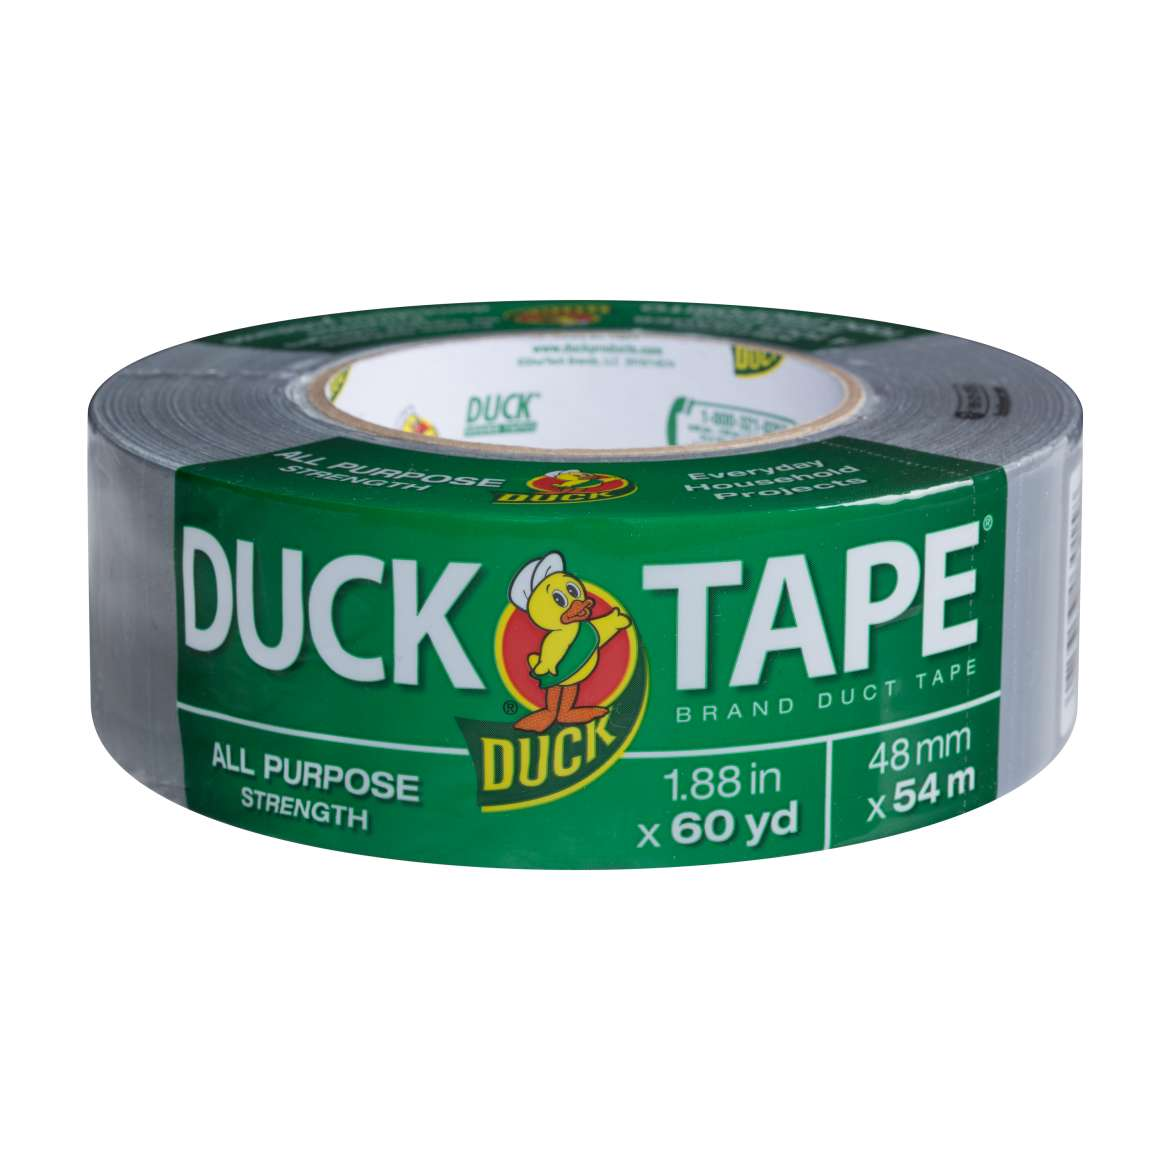 All Purpose Duck Tape® Brand Duct Tape - Silver, 1.88 in. x 60 yd. Image